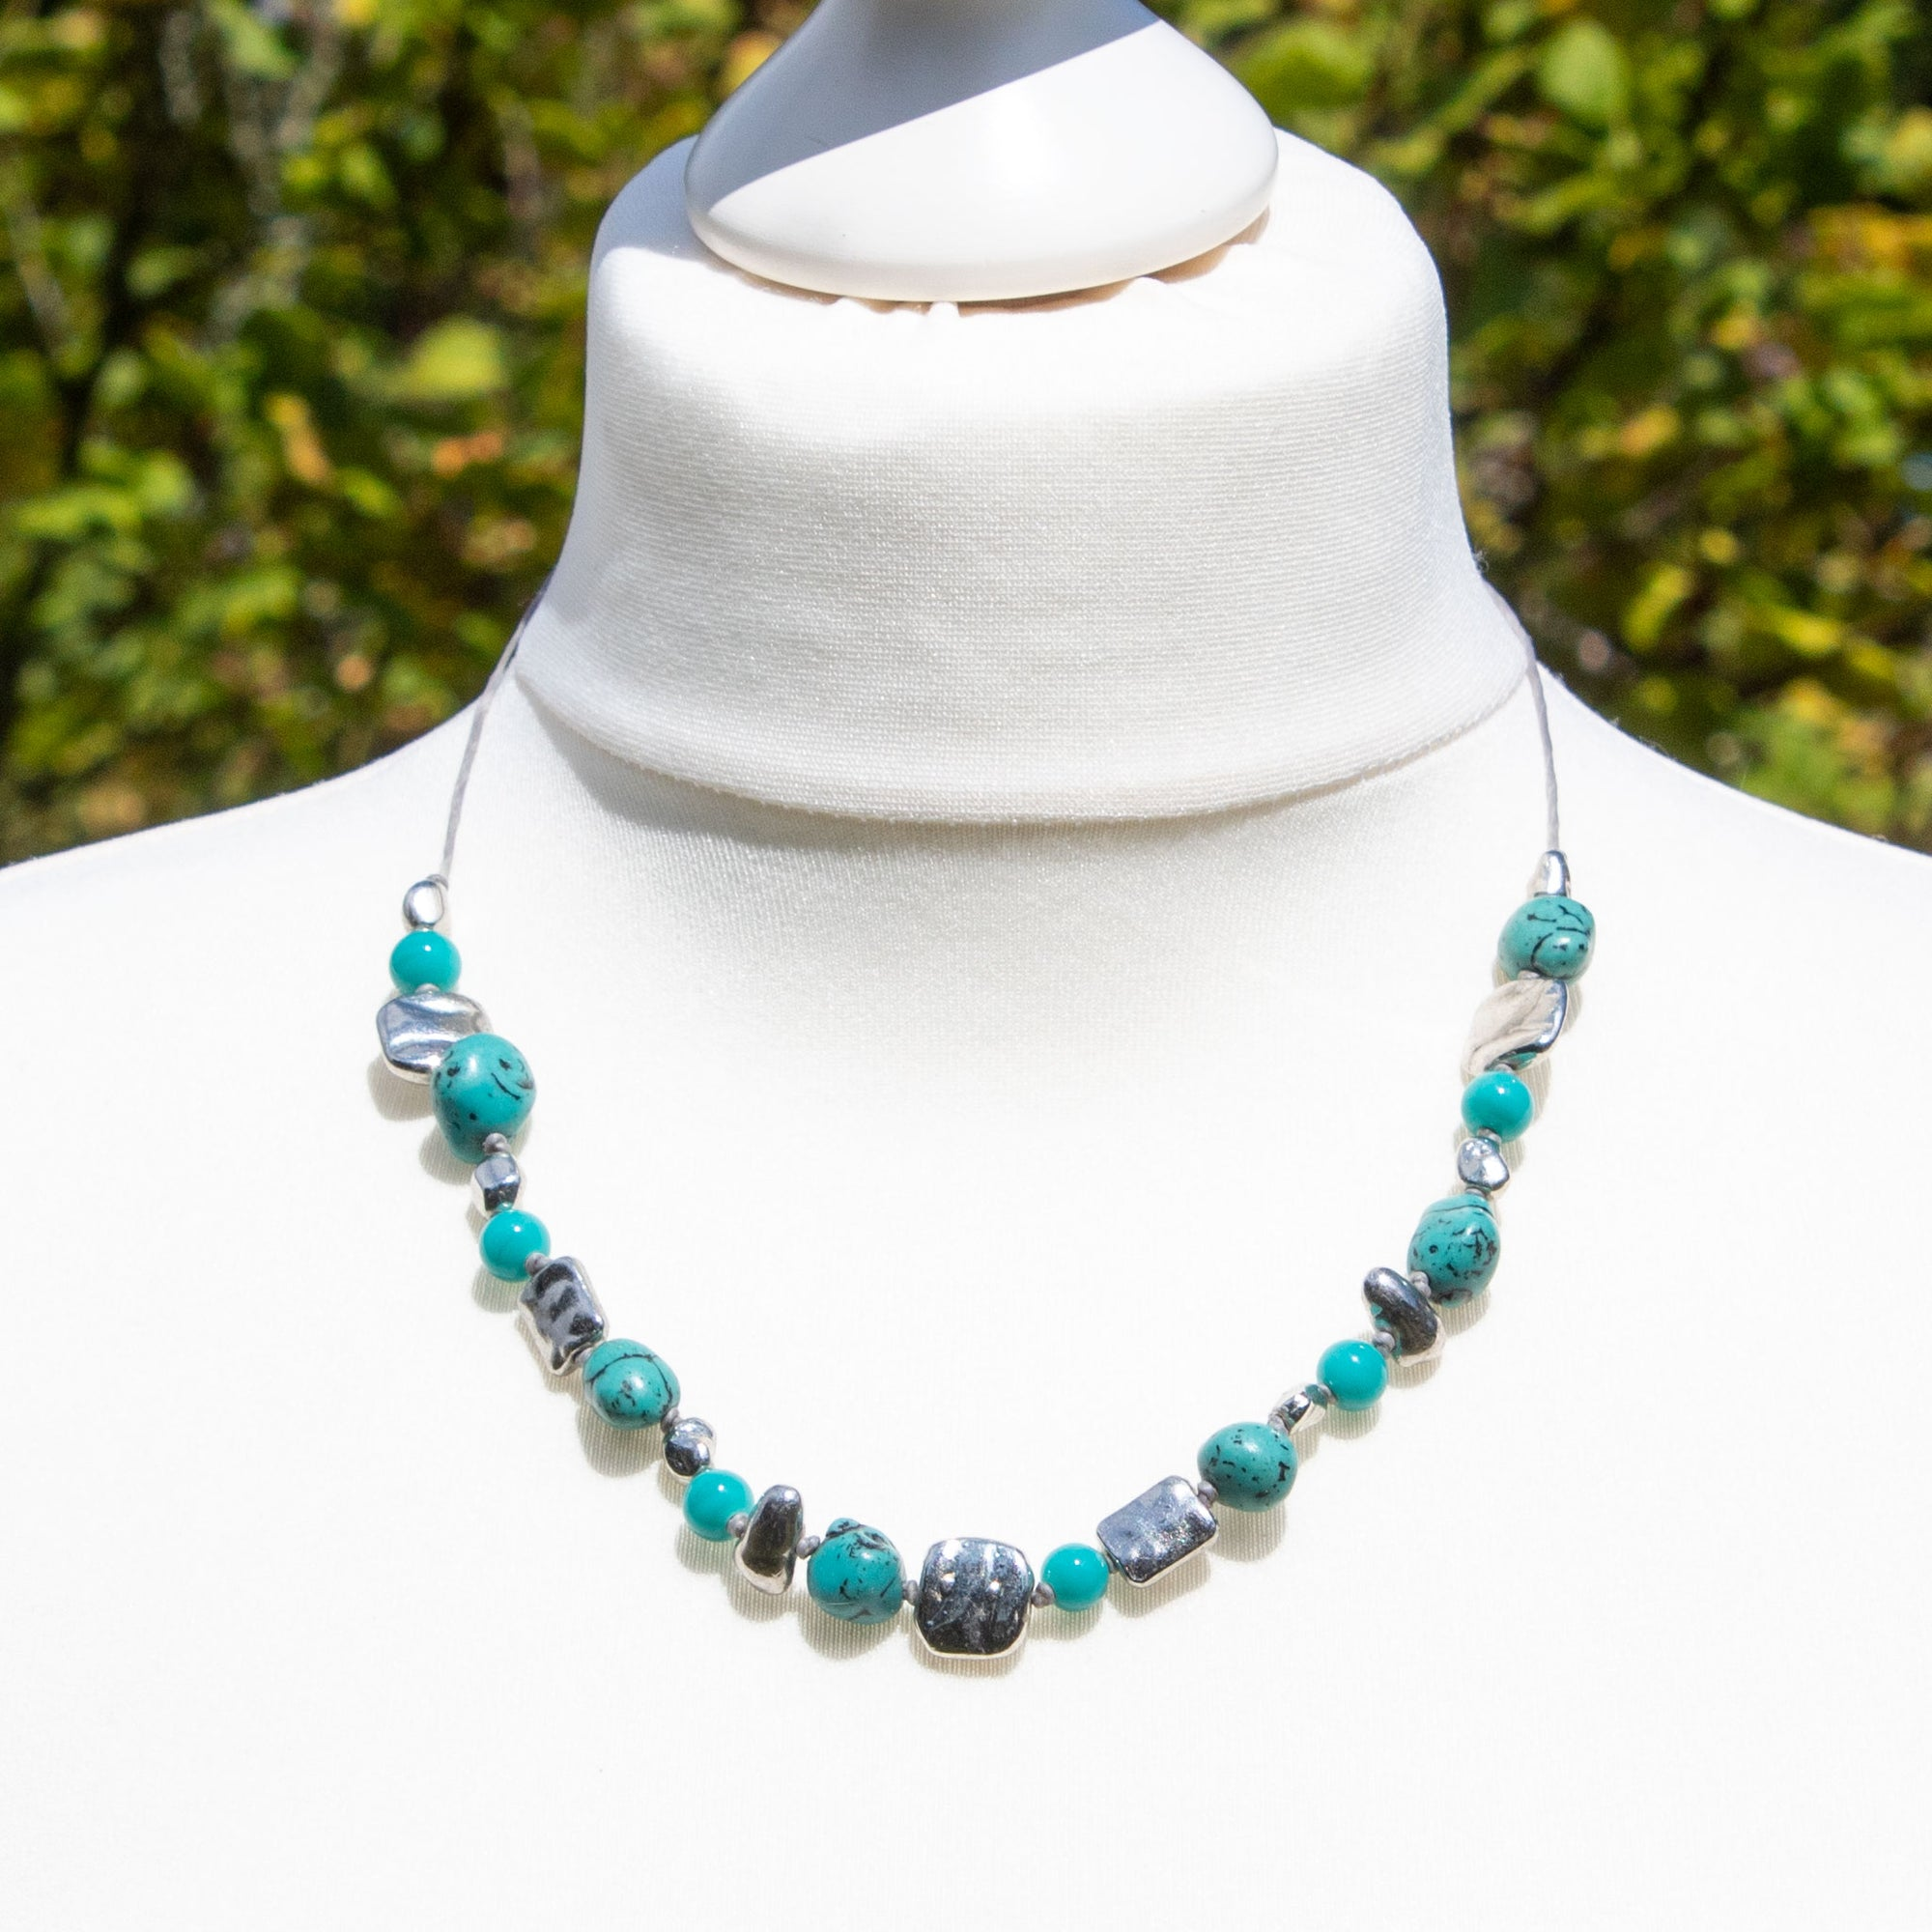 Turquoise Stone & Metallic Bead Necklace | Necklace - The Naughty Shrew